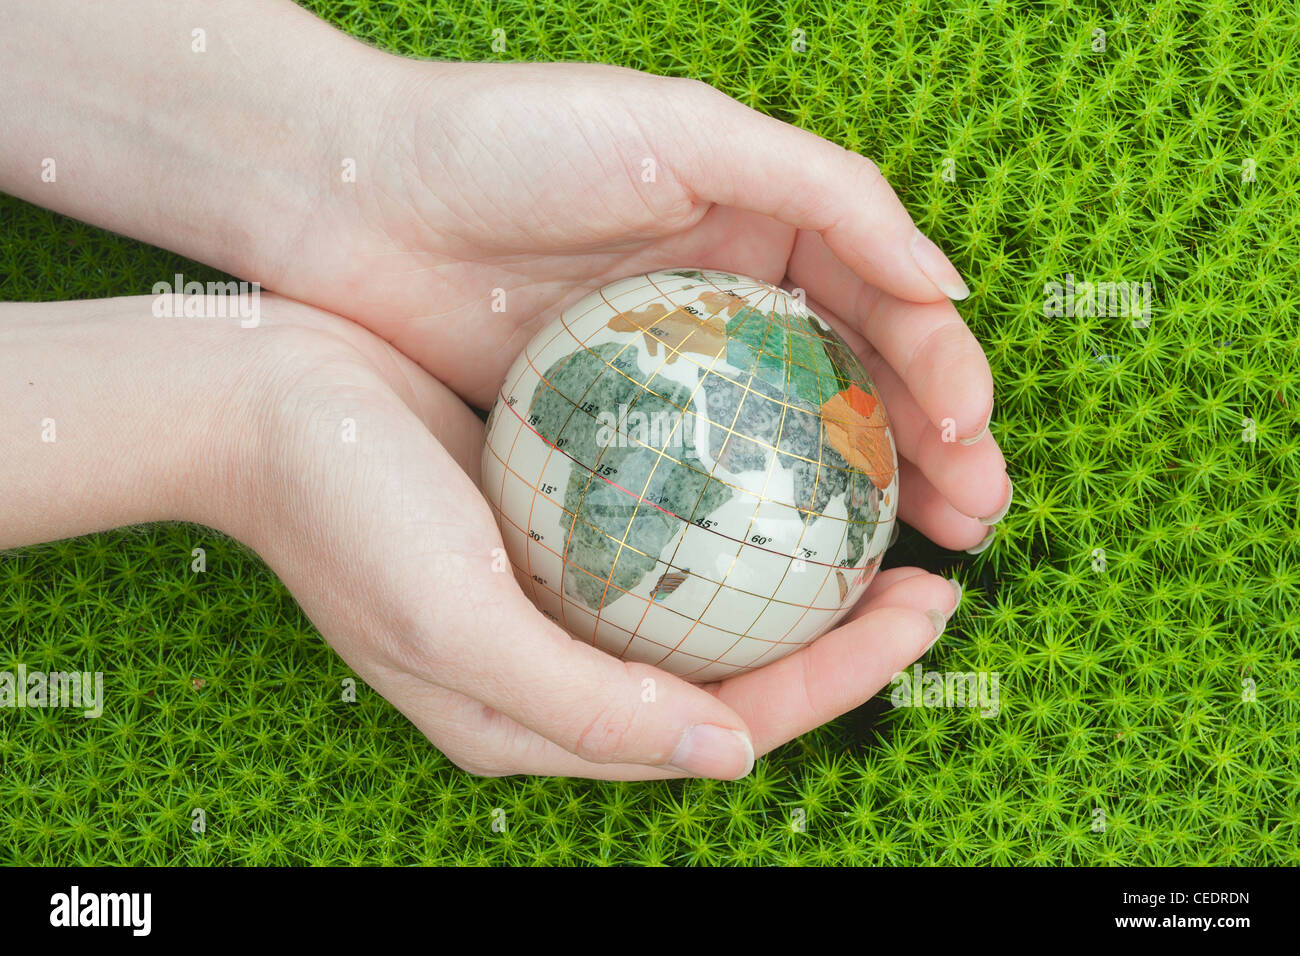 Save the world. Earth globe in a palm hands on green moss background. - Stock Image